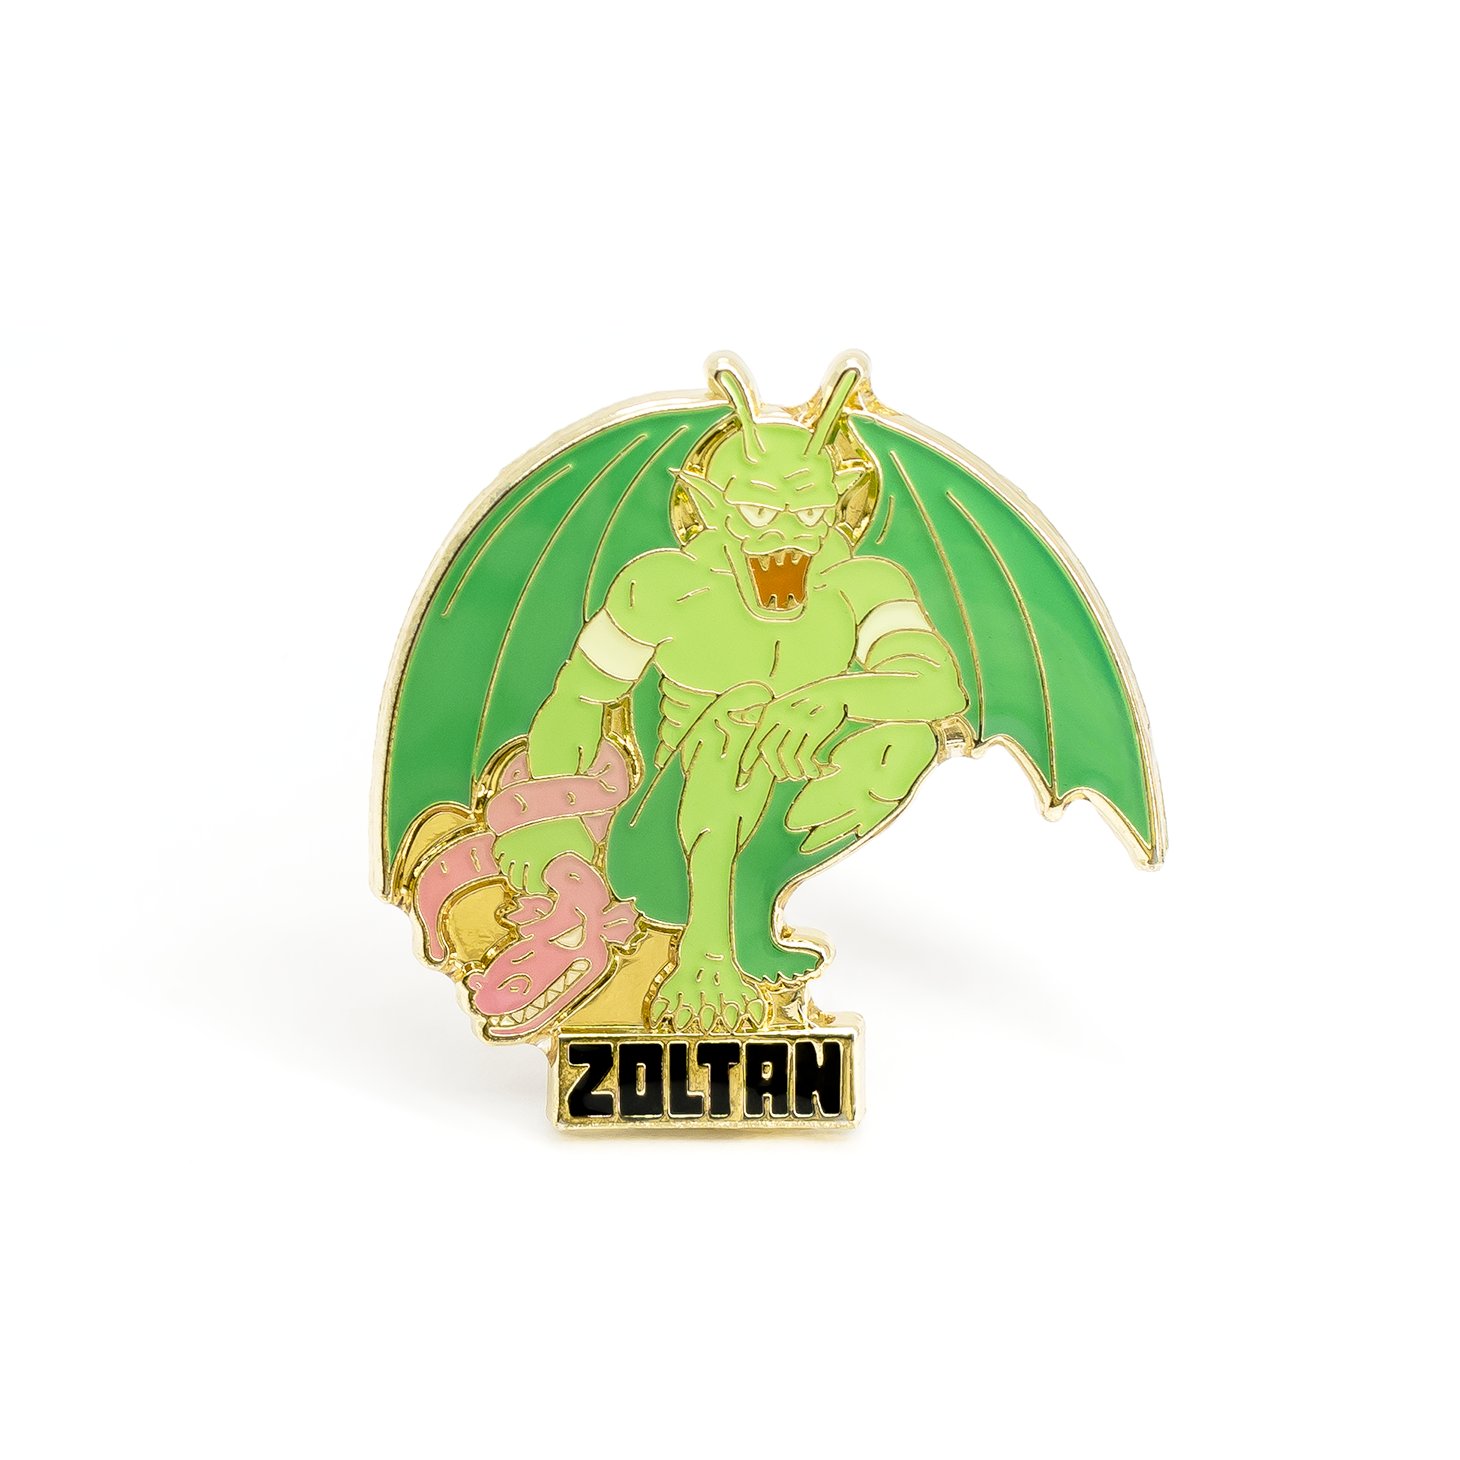 Zoltan enamel pin